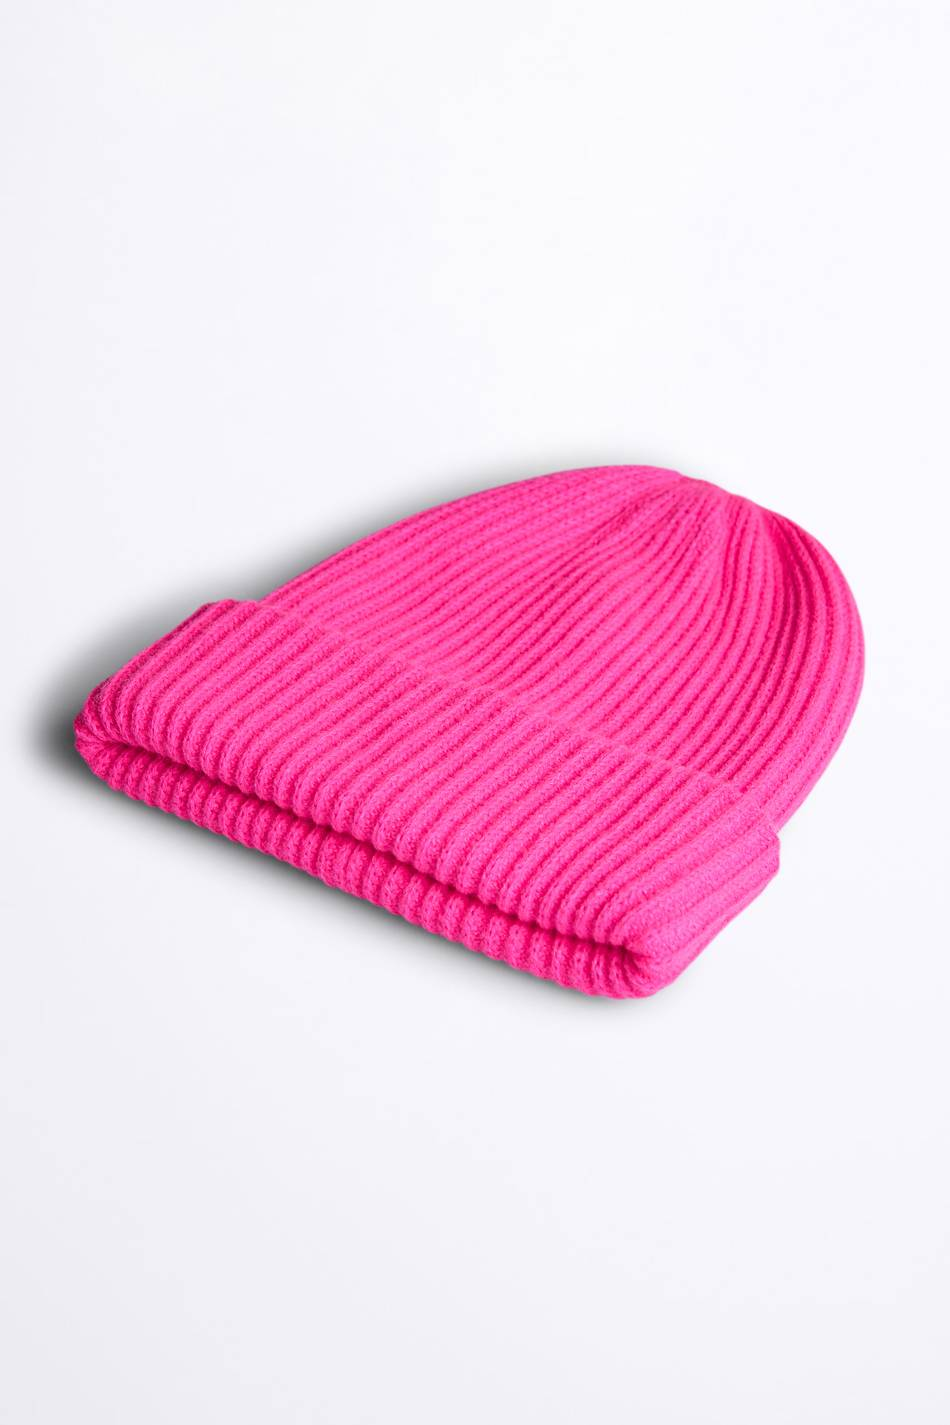 Gina Tricot Evin neon hat